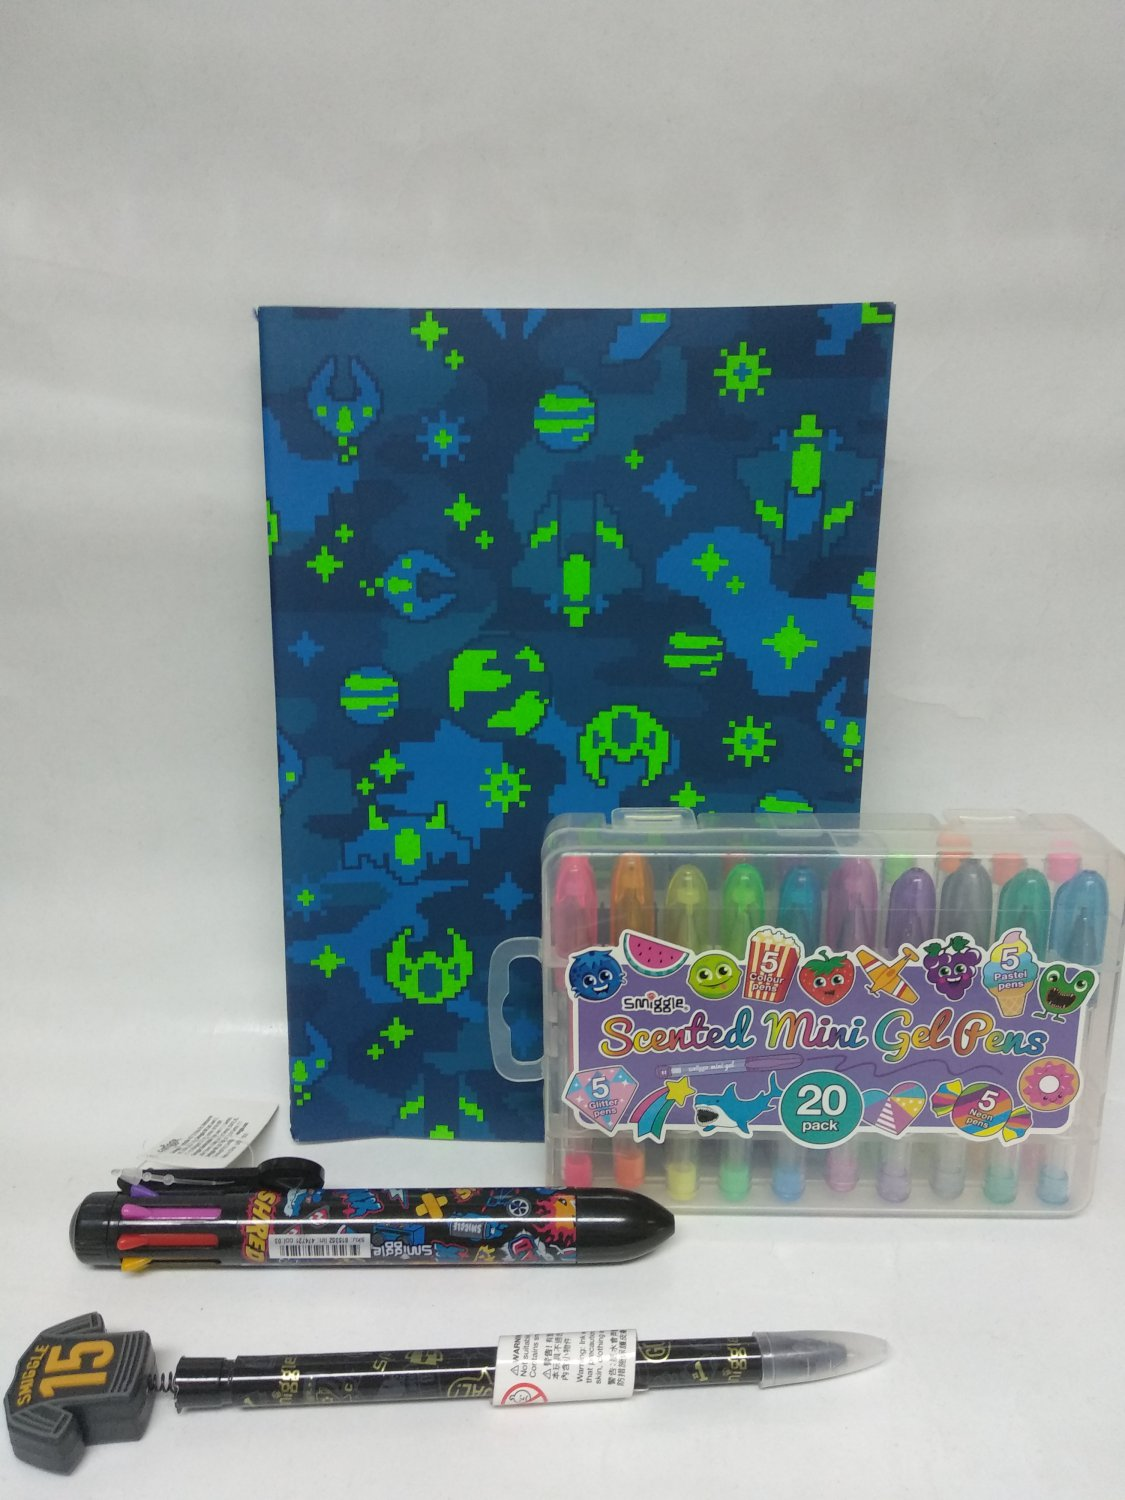 Smiggle Scented Mini Gel Pen 20 and Accessories